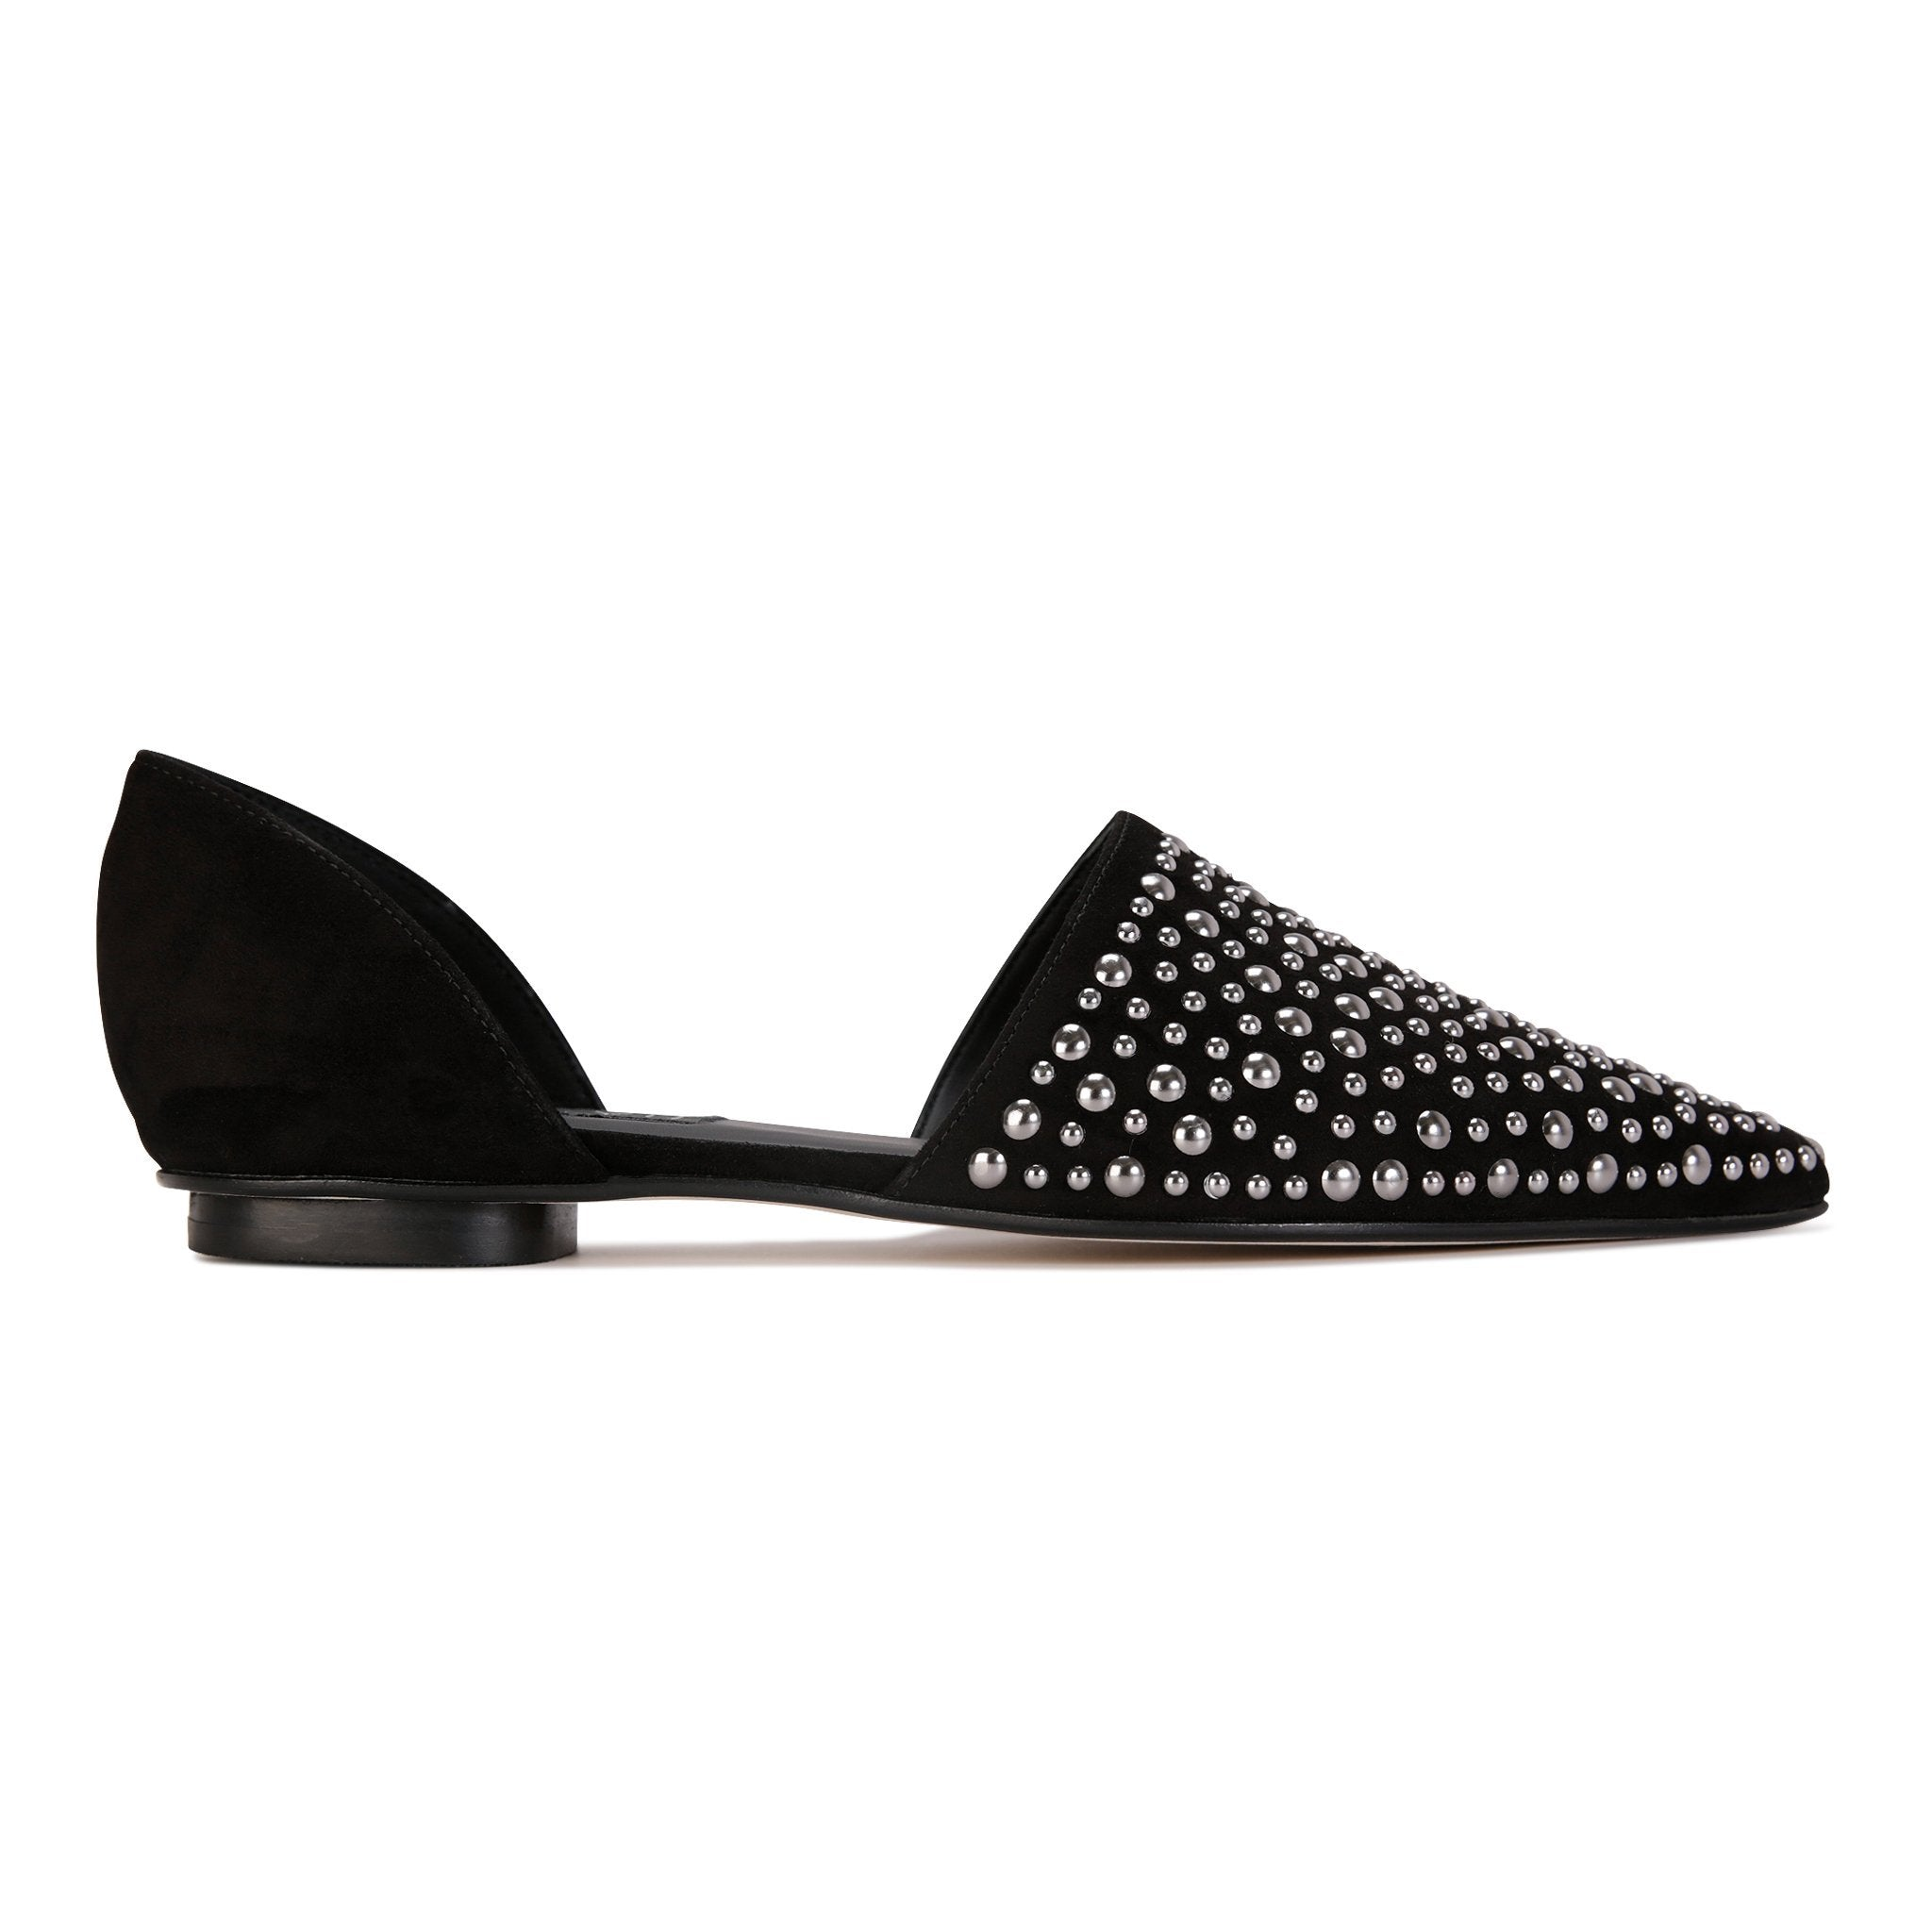 ELBA - Velukid Nero + Big Gunmetal Studs, VIAJIYU - Women's Hand Made Sustainable Luxury Shoes. Made in Italy. Made to Order.